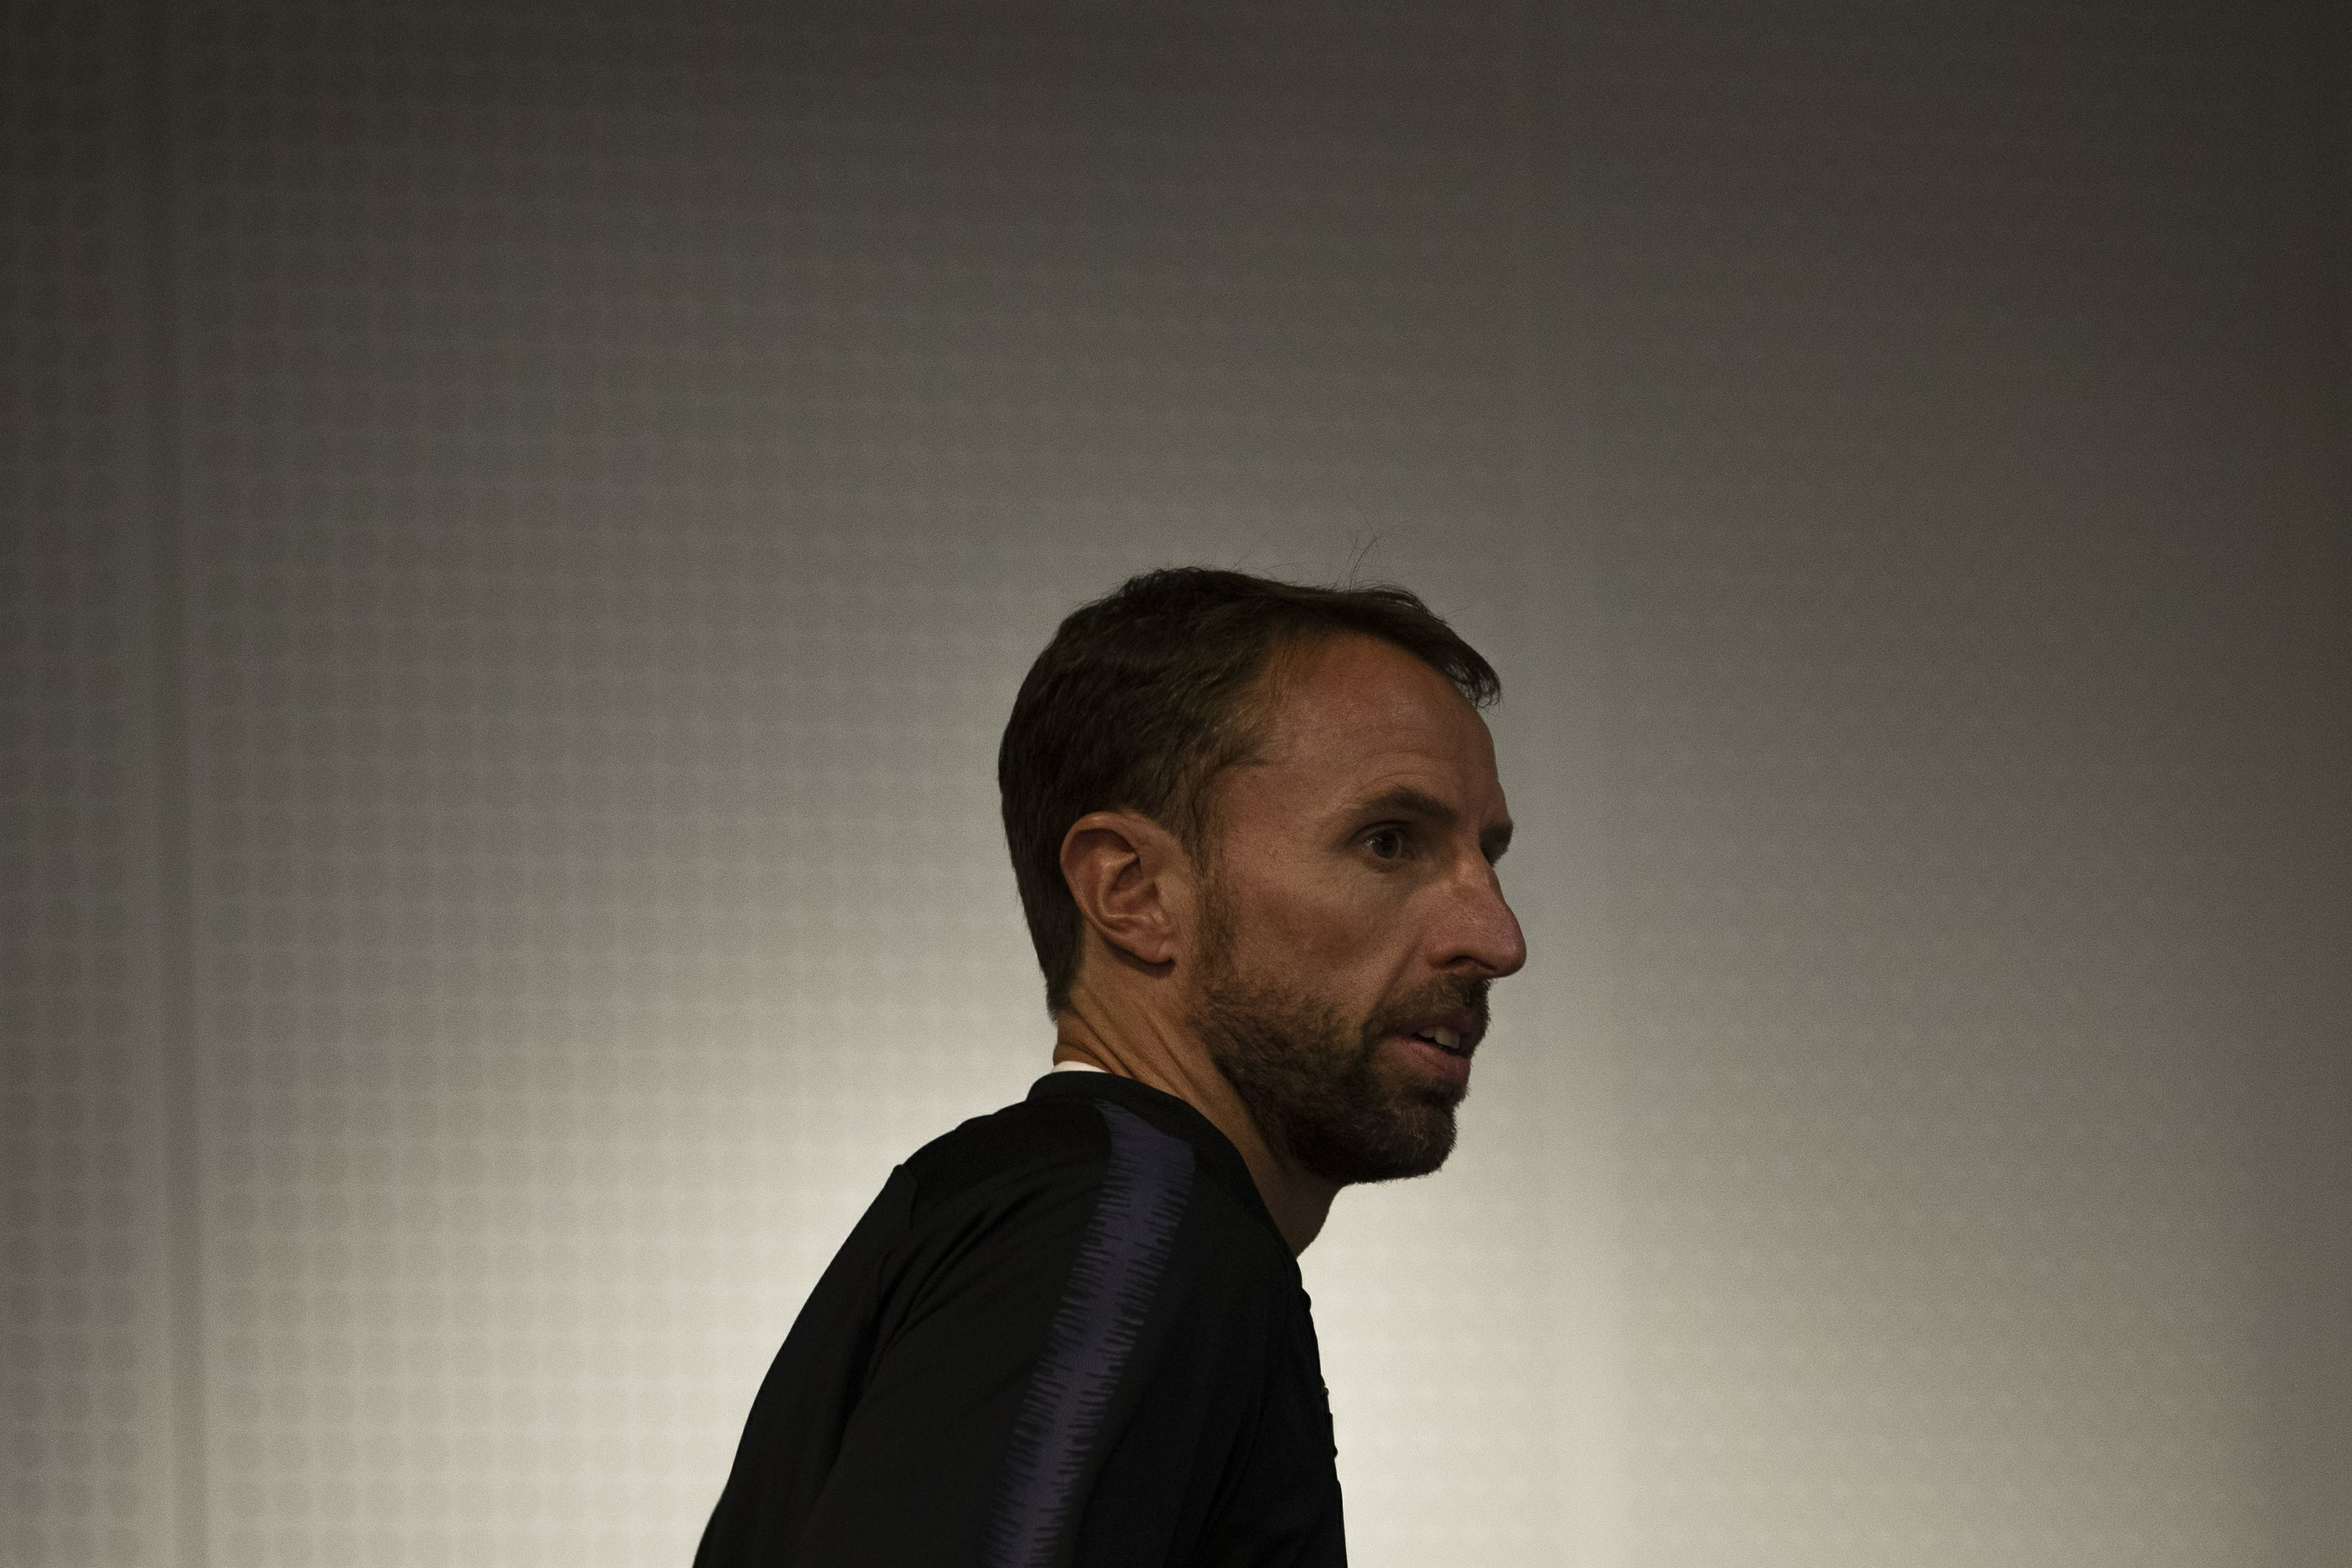 Southgate, England ready to face music of soccer history